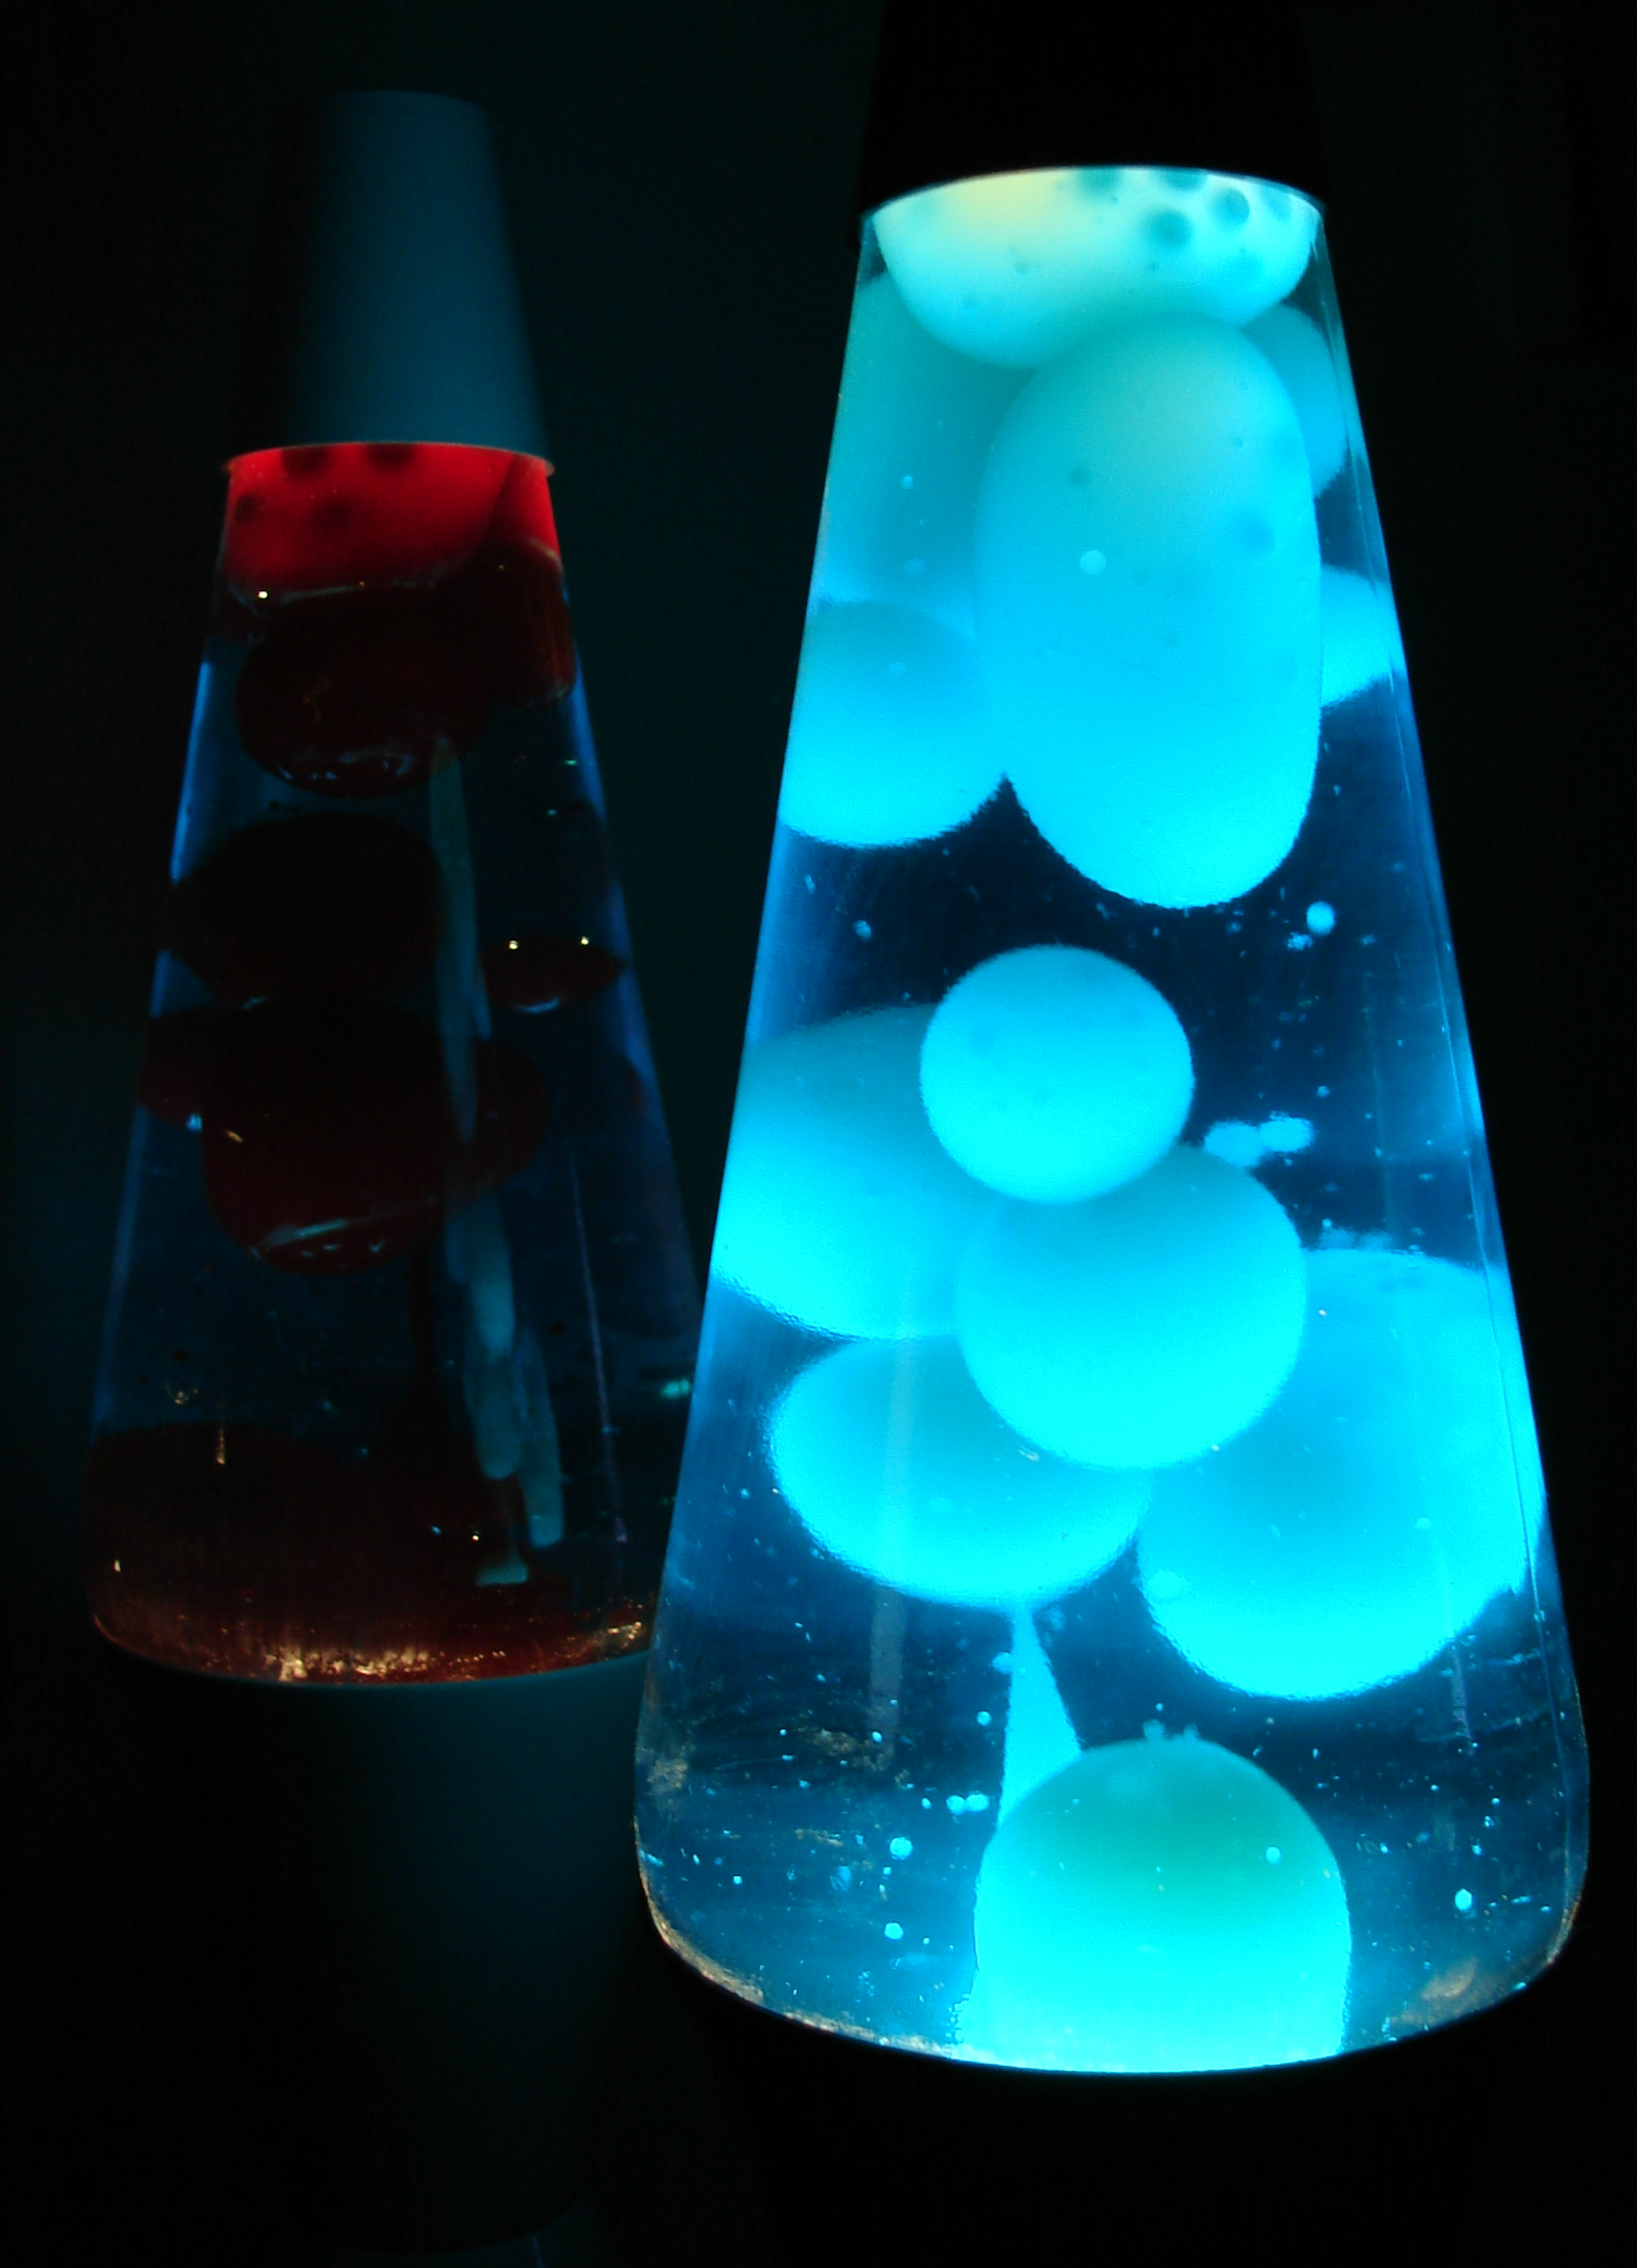 lava lamp background blue lava lamp melted wax 58. Black Bedroom Furniture Sets. Home Design Ideas